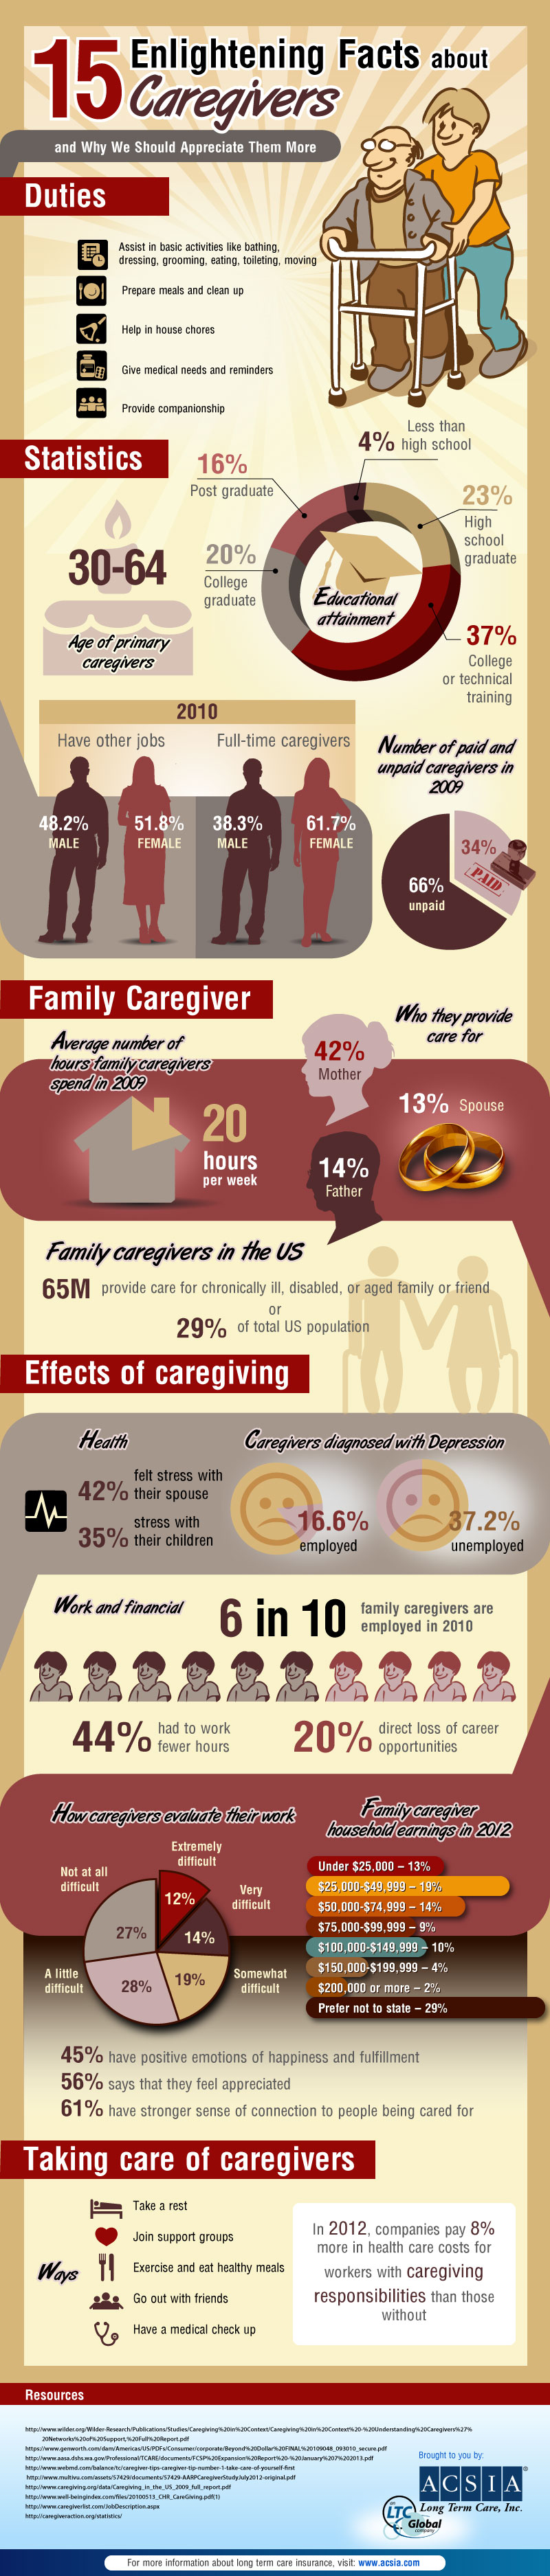 Facts About Caregivers